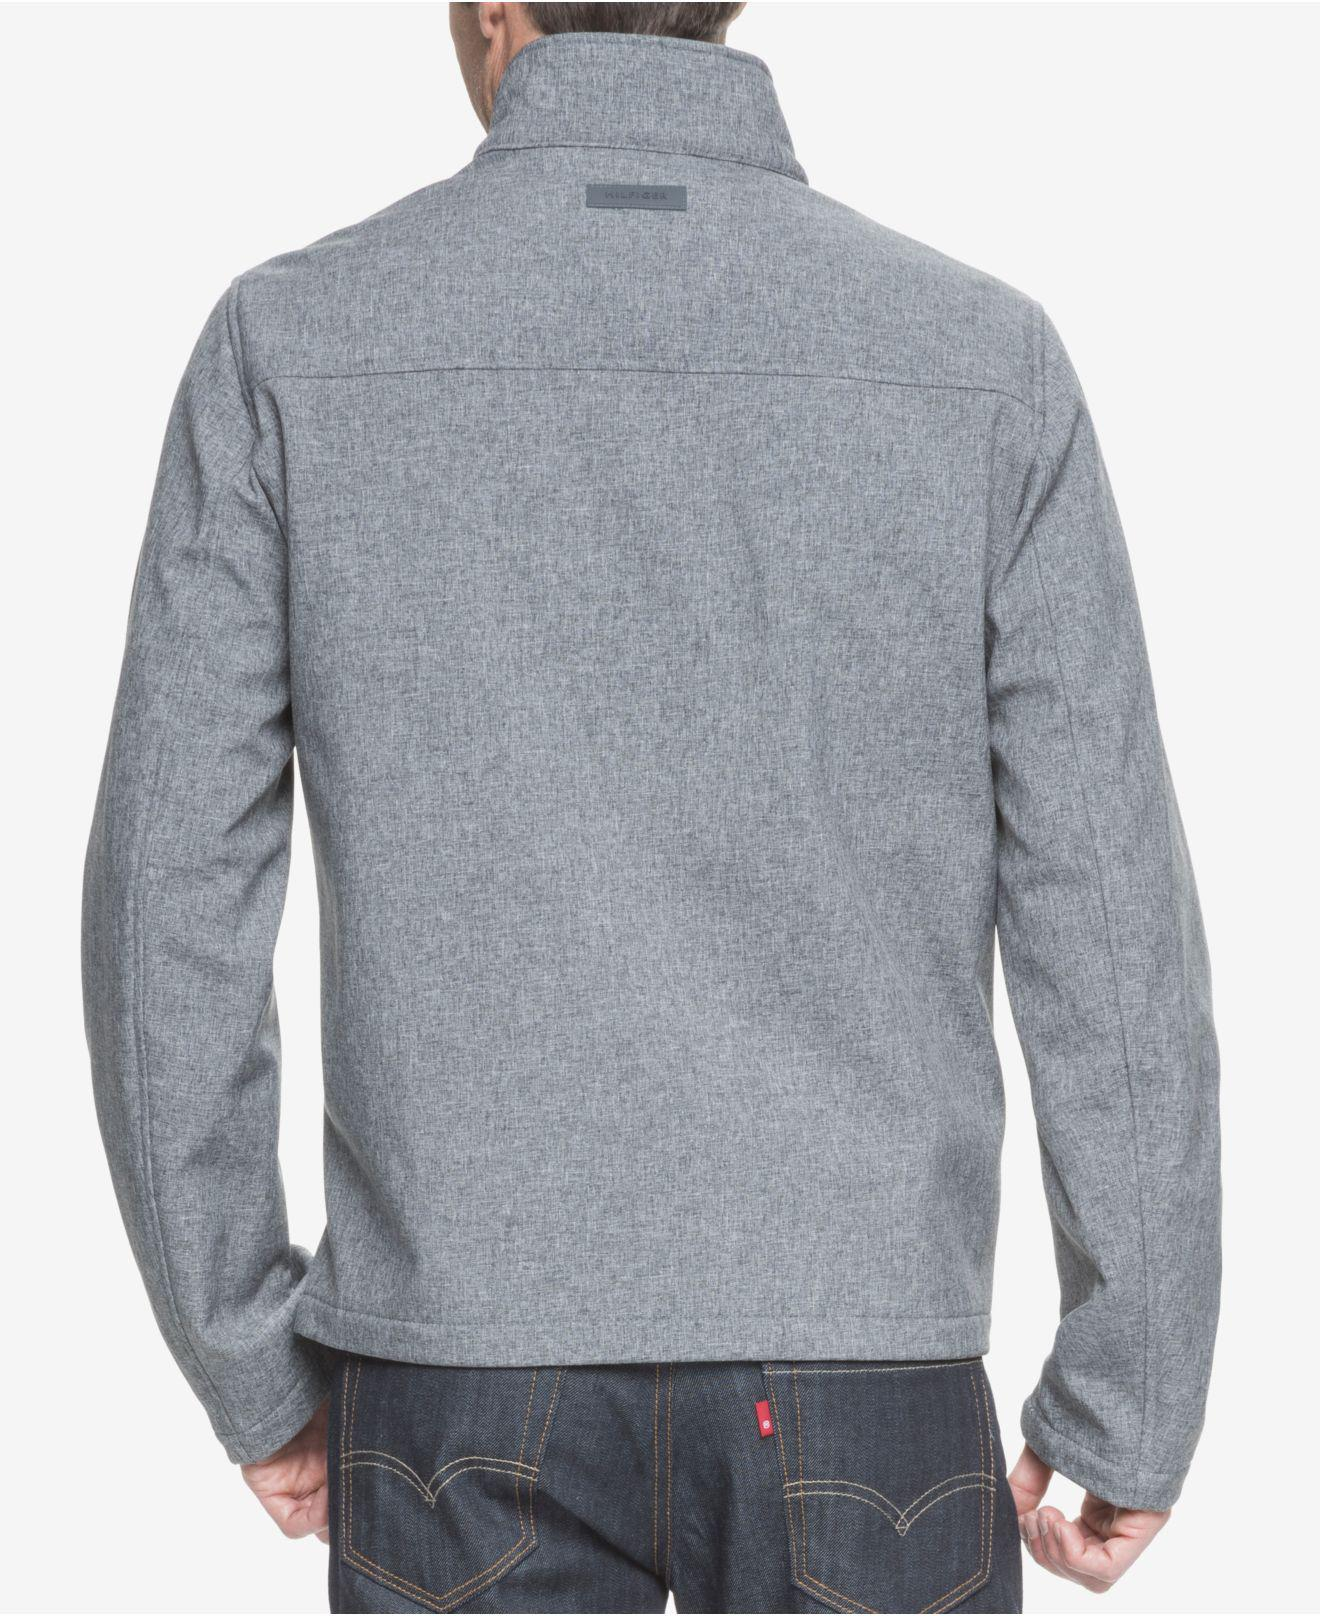 d4853bd5 Lyst - Tommy Hilfiger Big & Tall Classic Softshell Jacket in Gray for Men